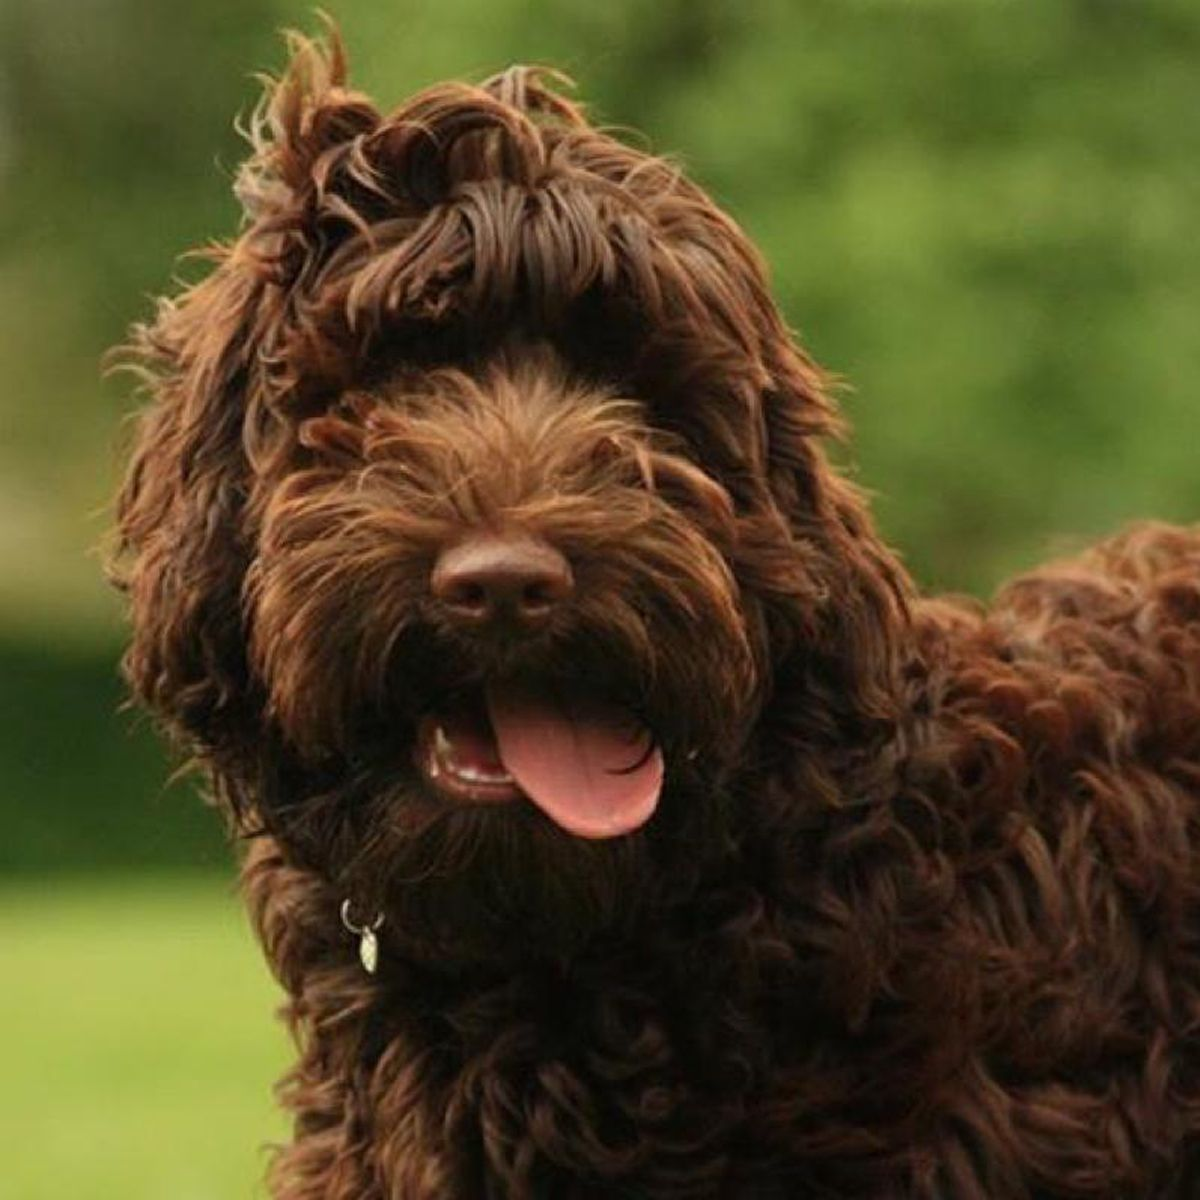 Newdoggysignup Cooper The Labradoodle From Edinburgh Just Wants To